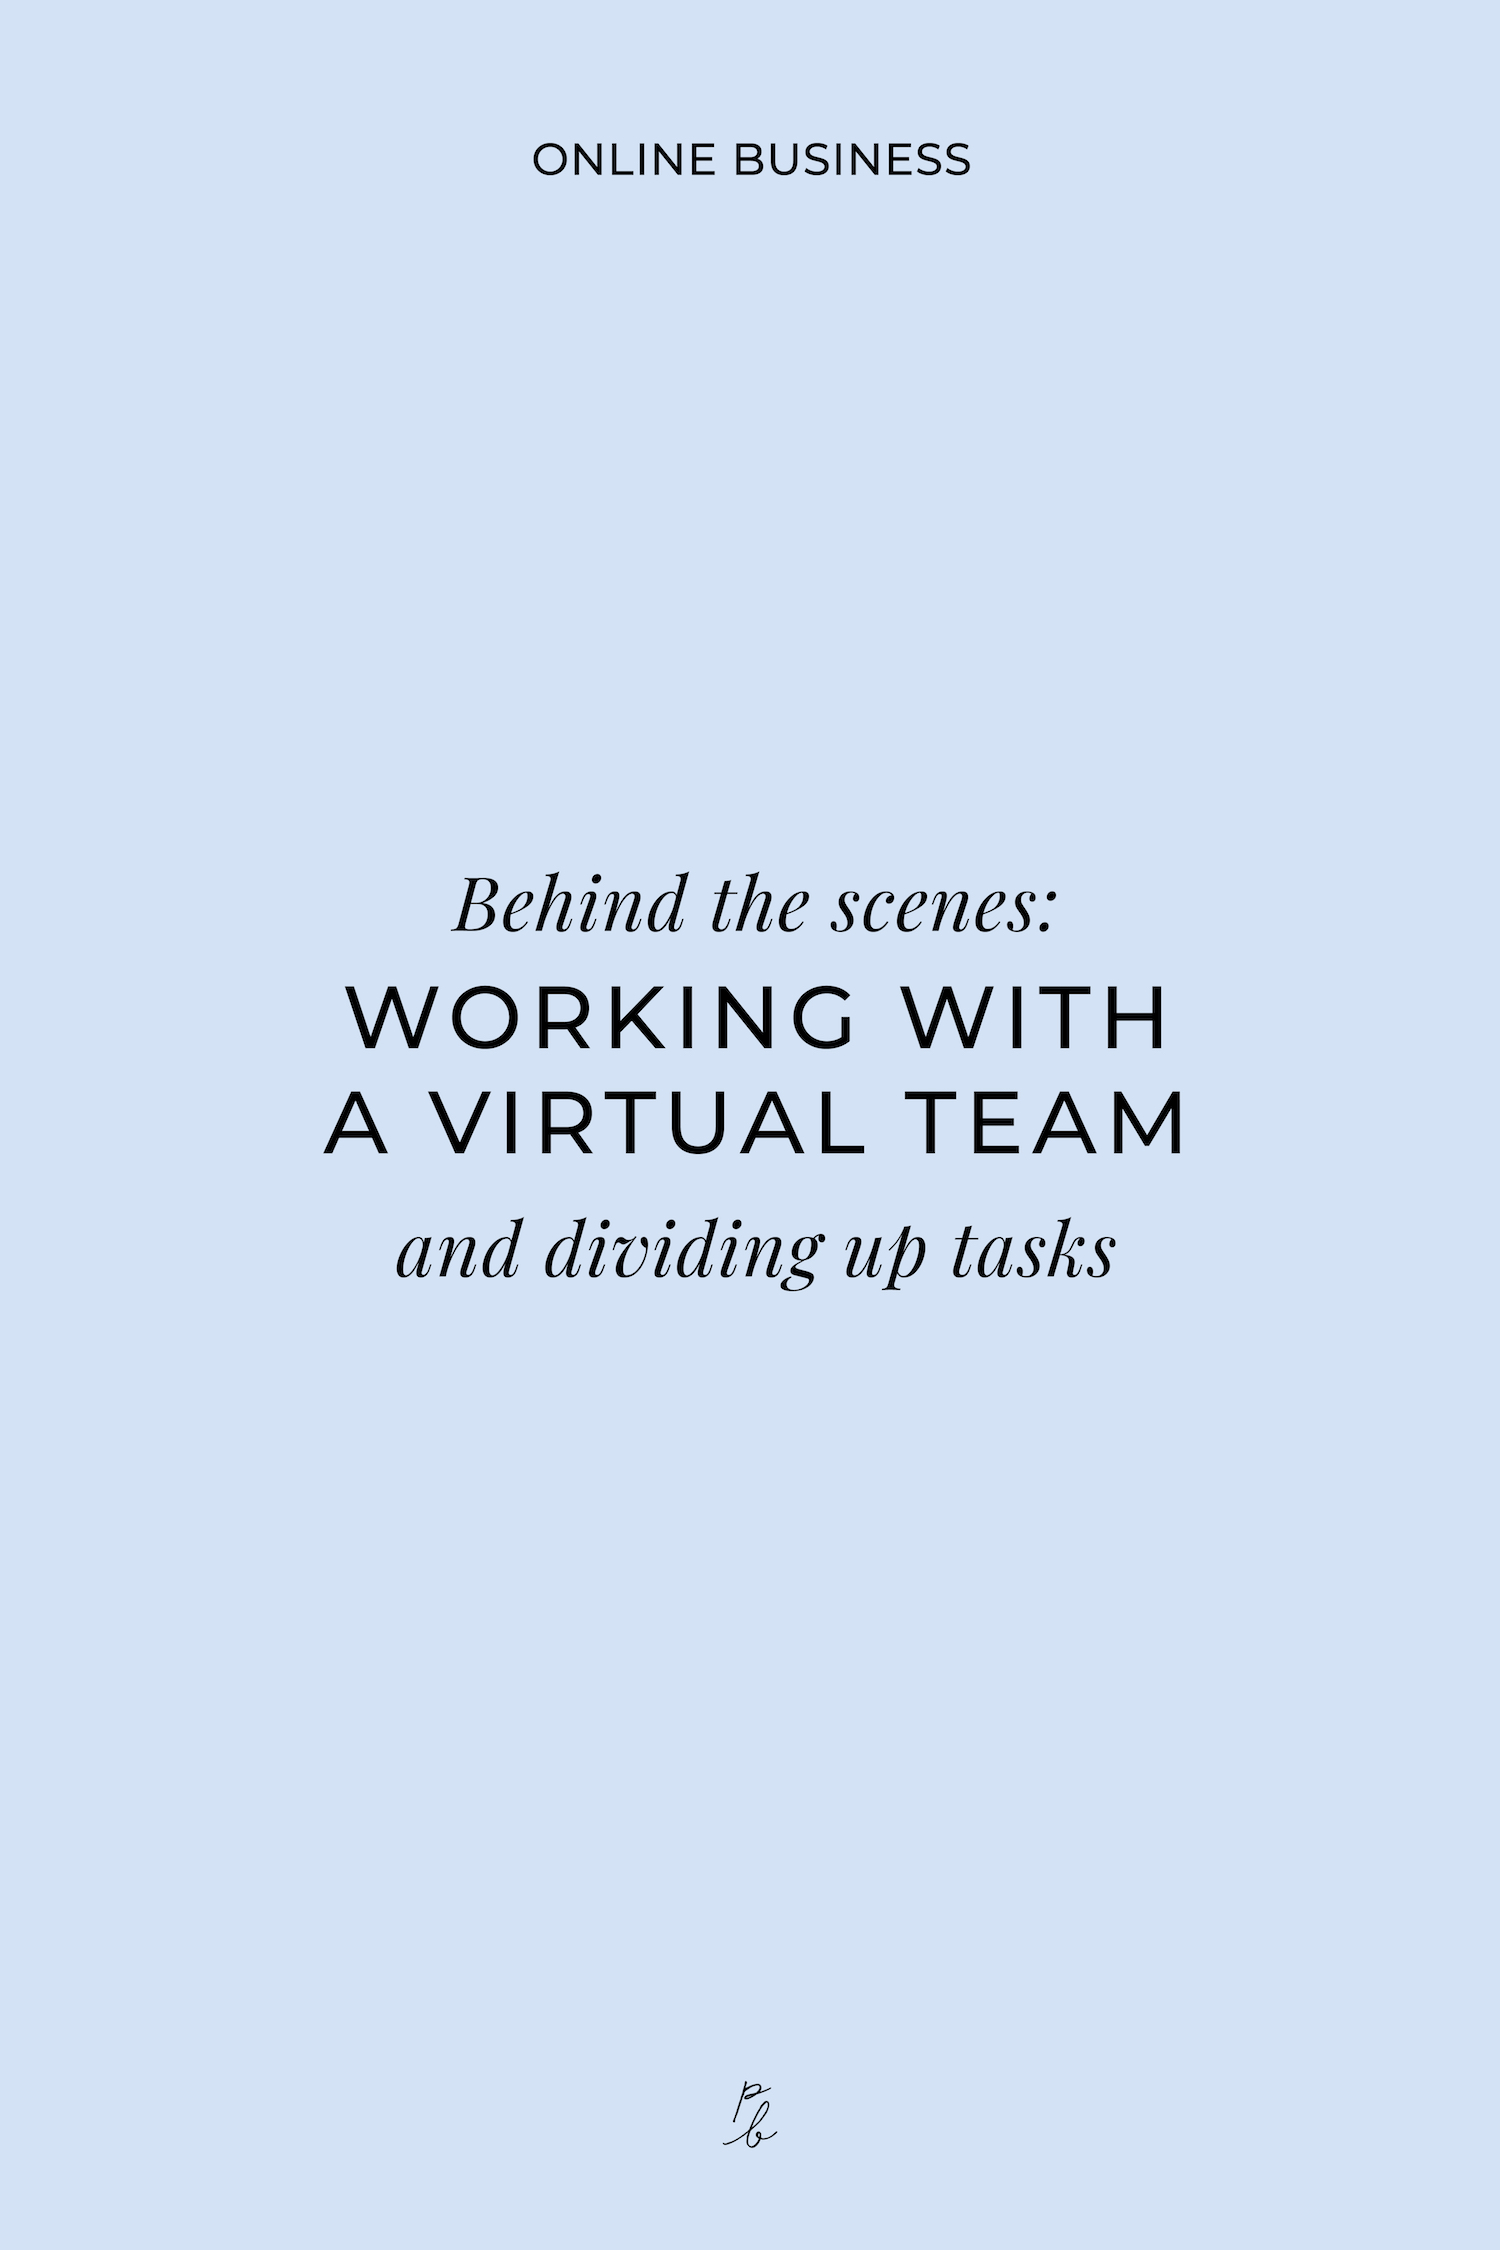 Behind the scenes- Working with a virtual team and dividing up tasks-03.jpeg